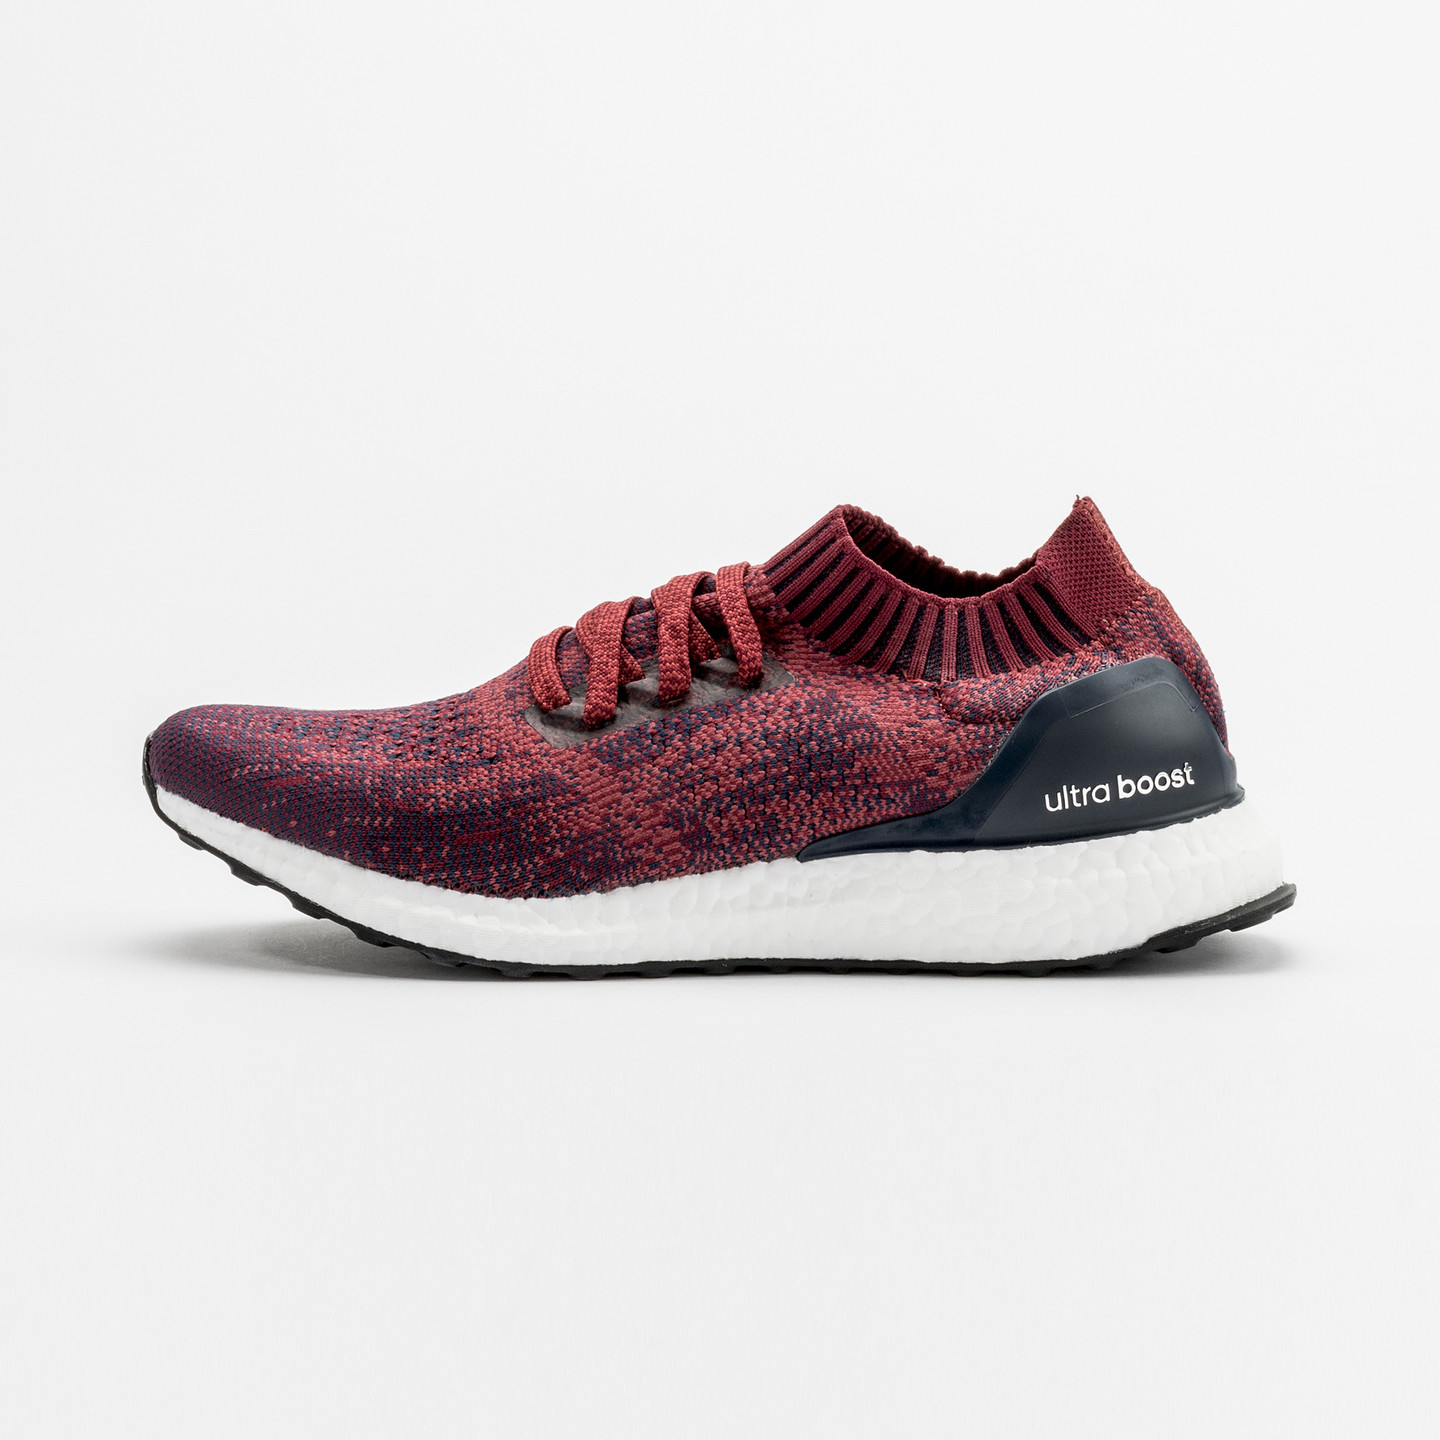 Adidas Ultra Boost Uncaged 'Burgundy' Mystery Red / Coll. Burgundy / Coll. Navy BA9617-46